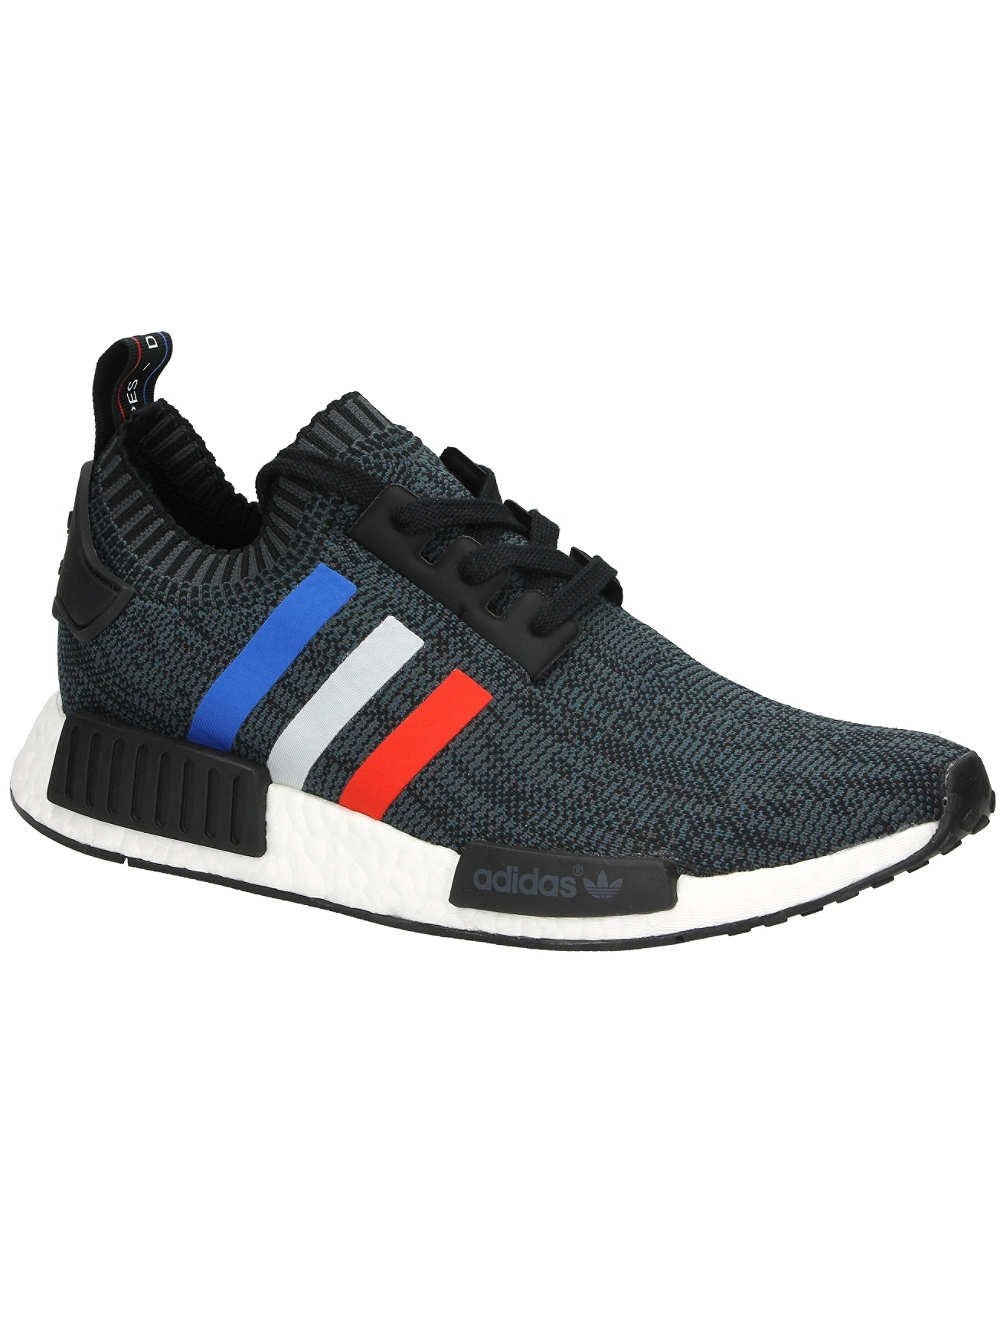 f25610ac7 Galleon - Adidas NMD R1 PK - BB2887